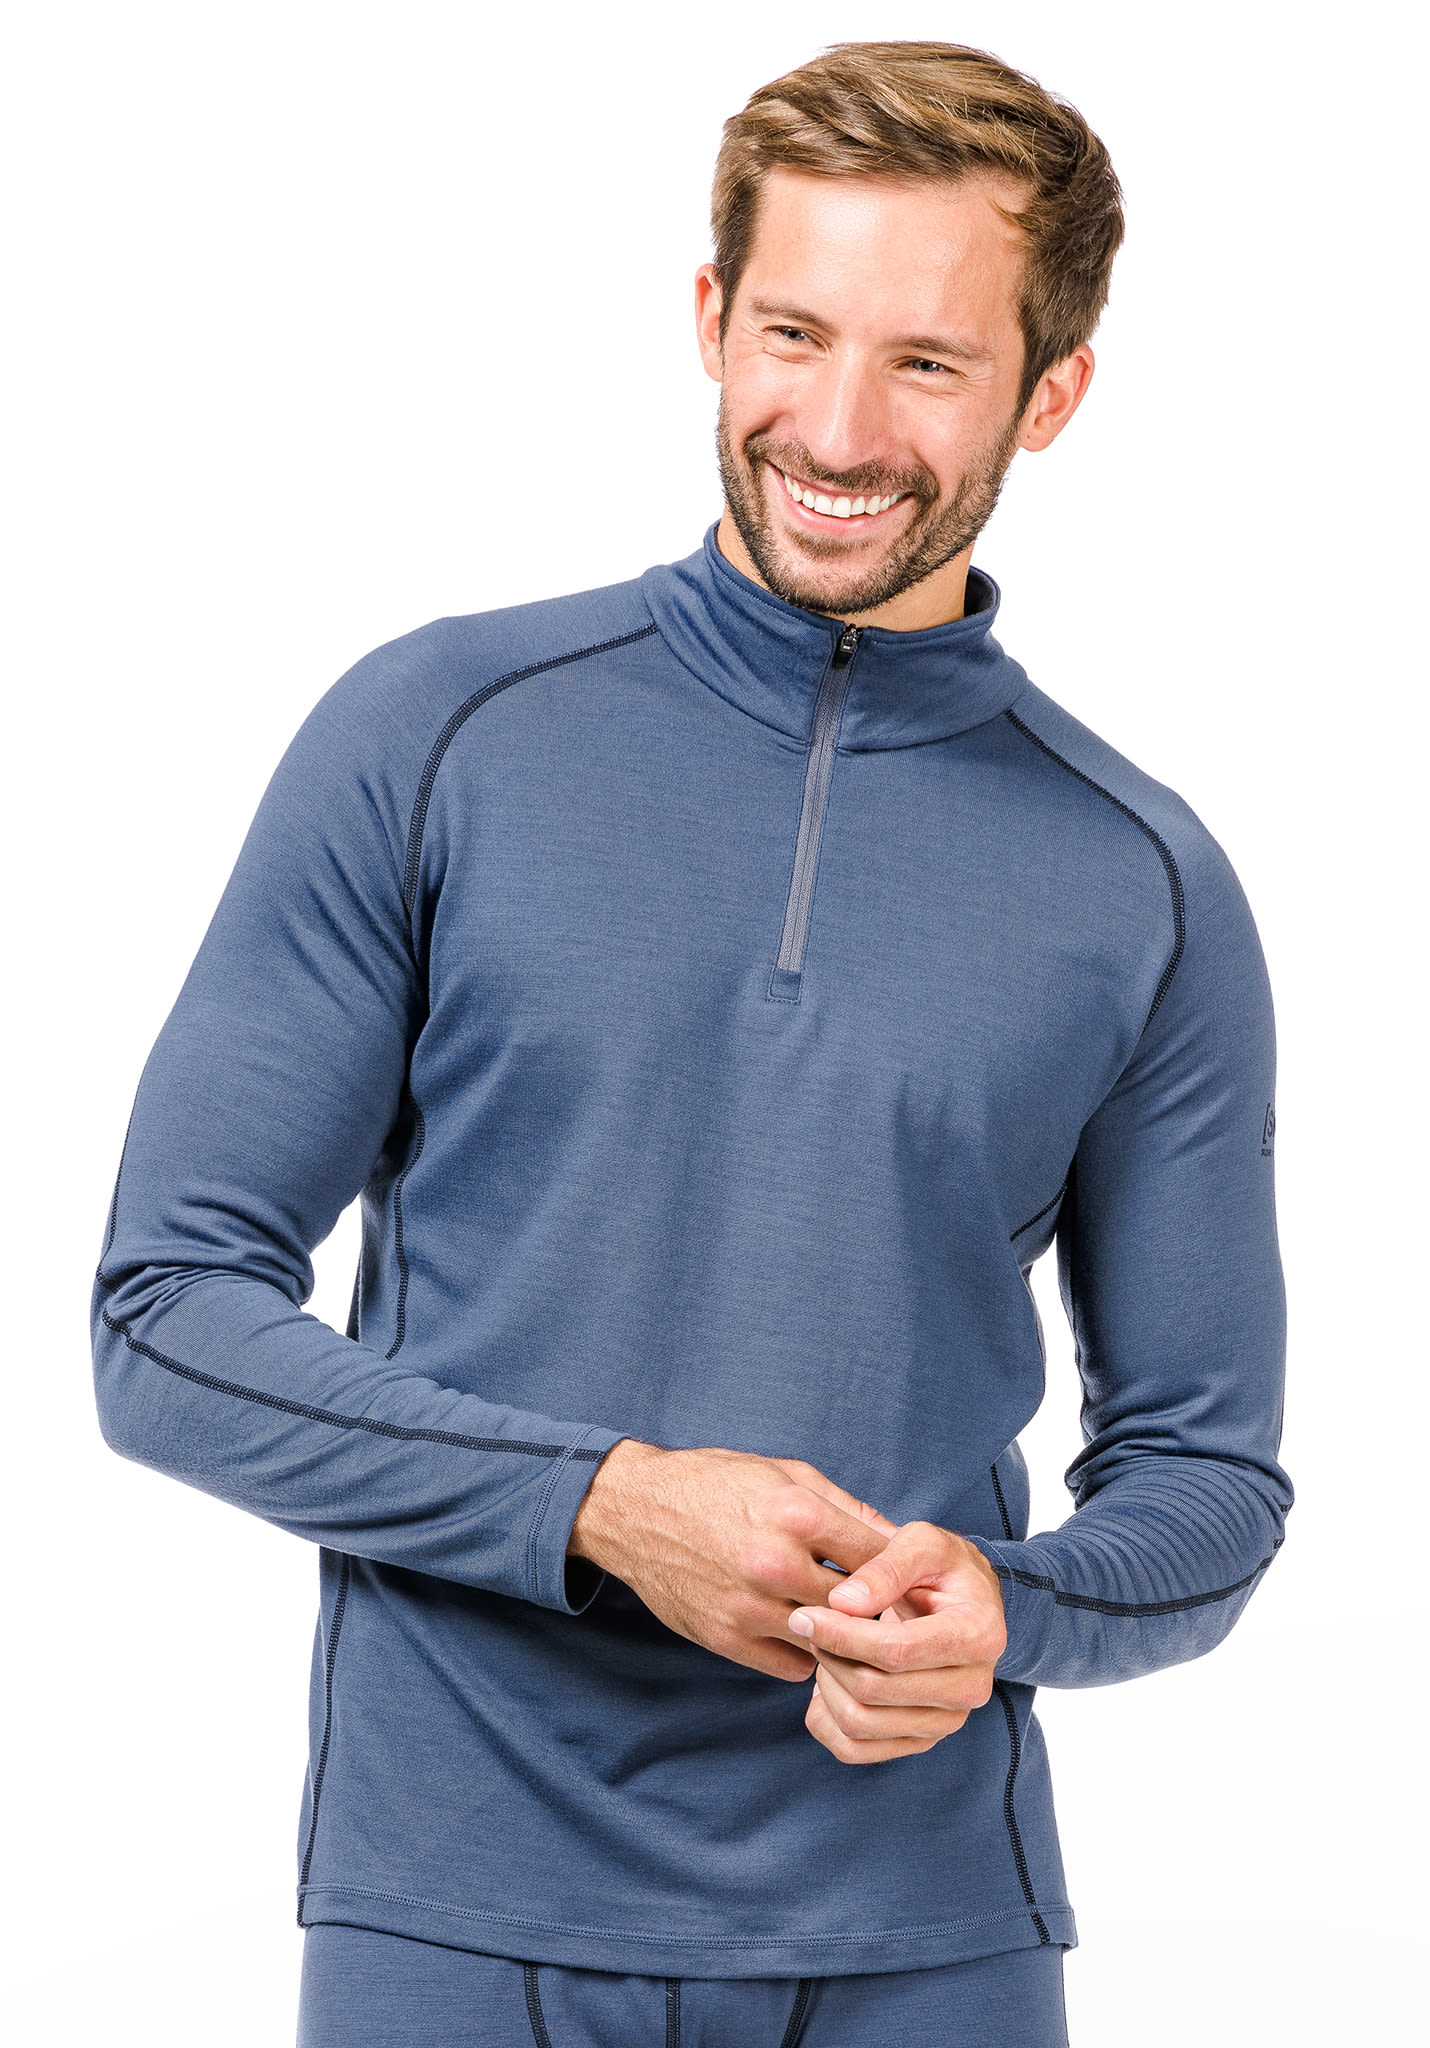 Camiseta 230 Para natural 14 Hombres Super Zip Base Térmica IAwPBI4Xq